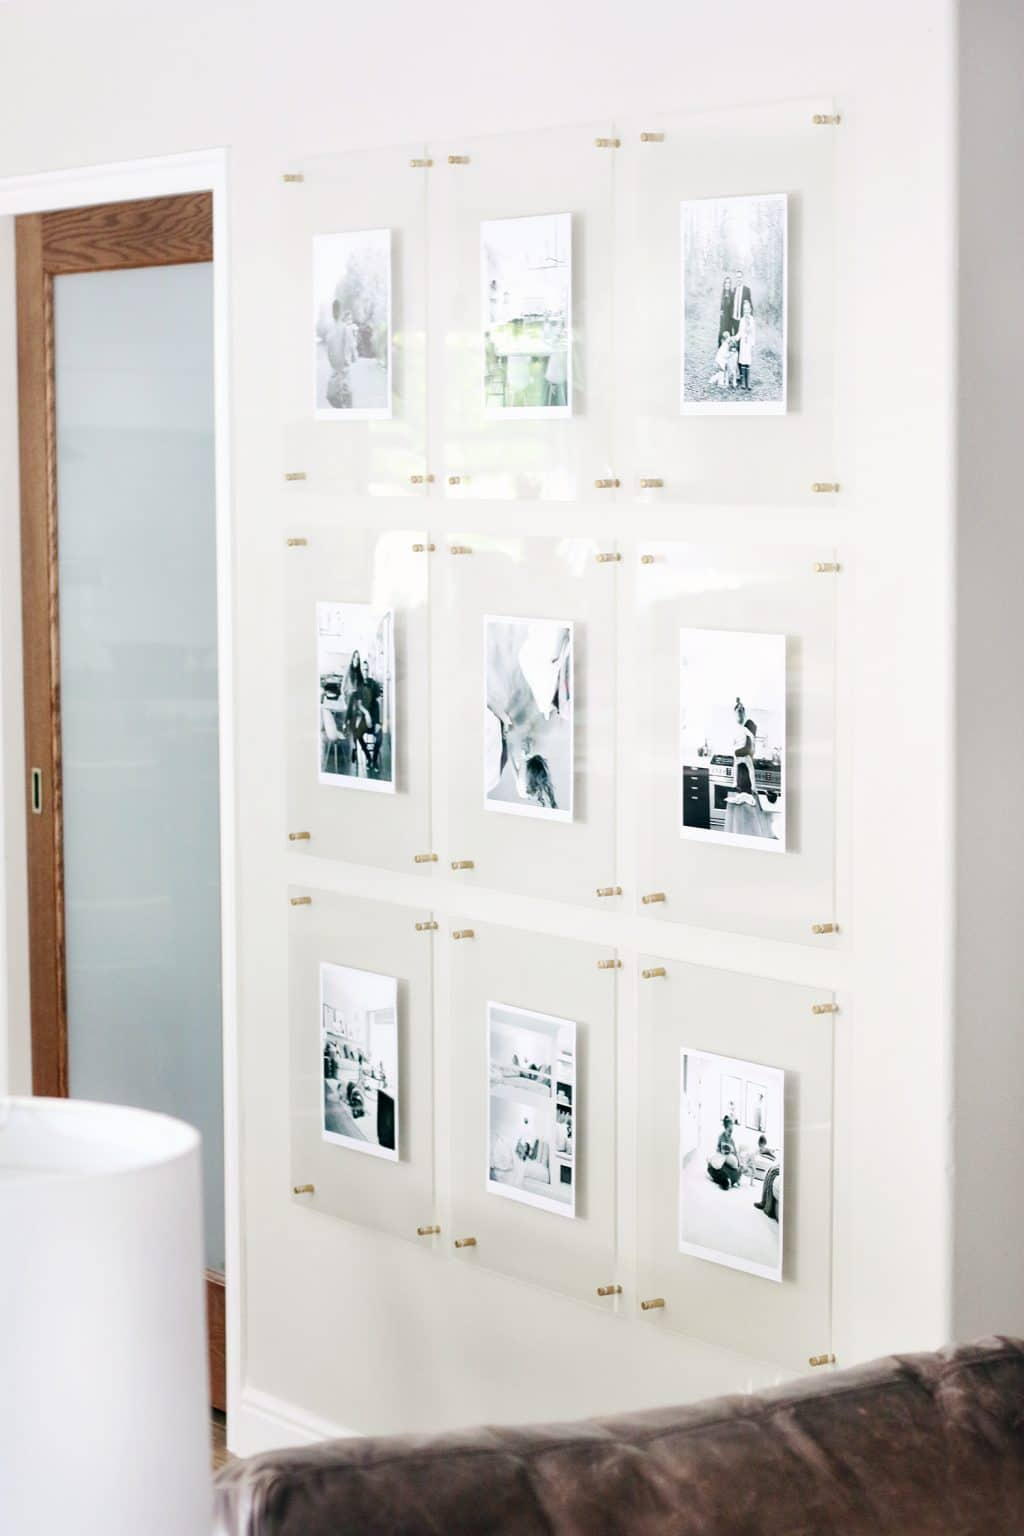 Have blank wall space in your home? Gallery walls are a great way to add style and a personal touch to your home. These gallery wall ideas will inspire you to create your own ASAP.